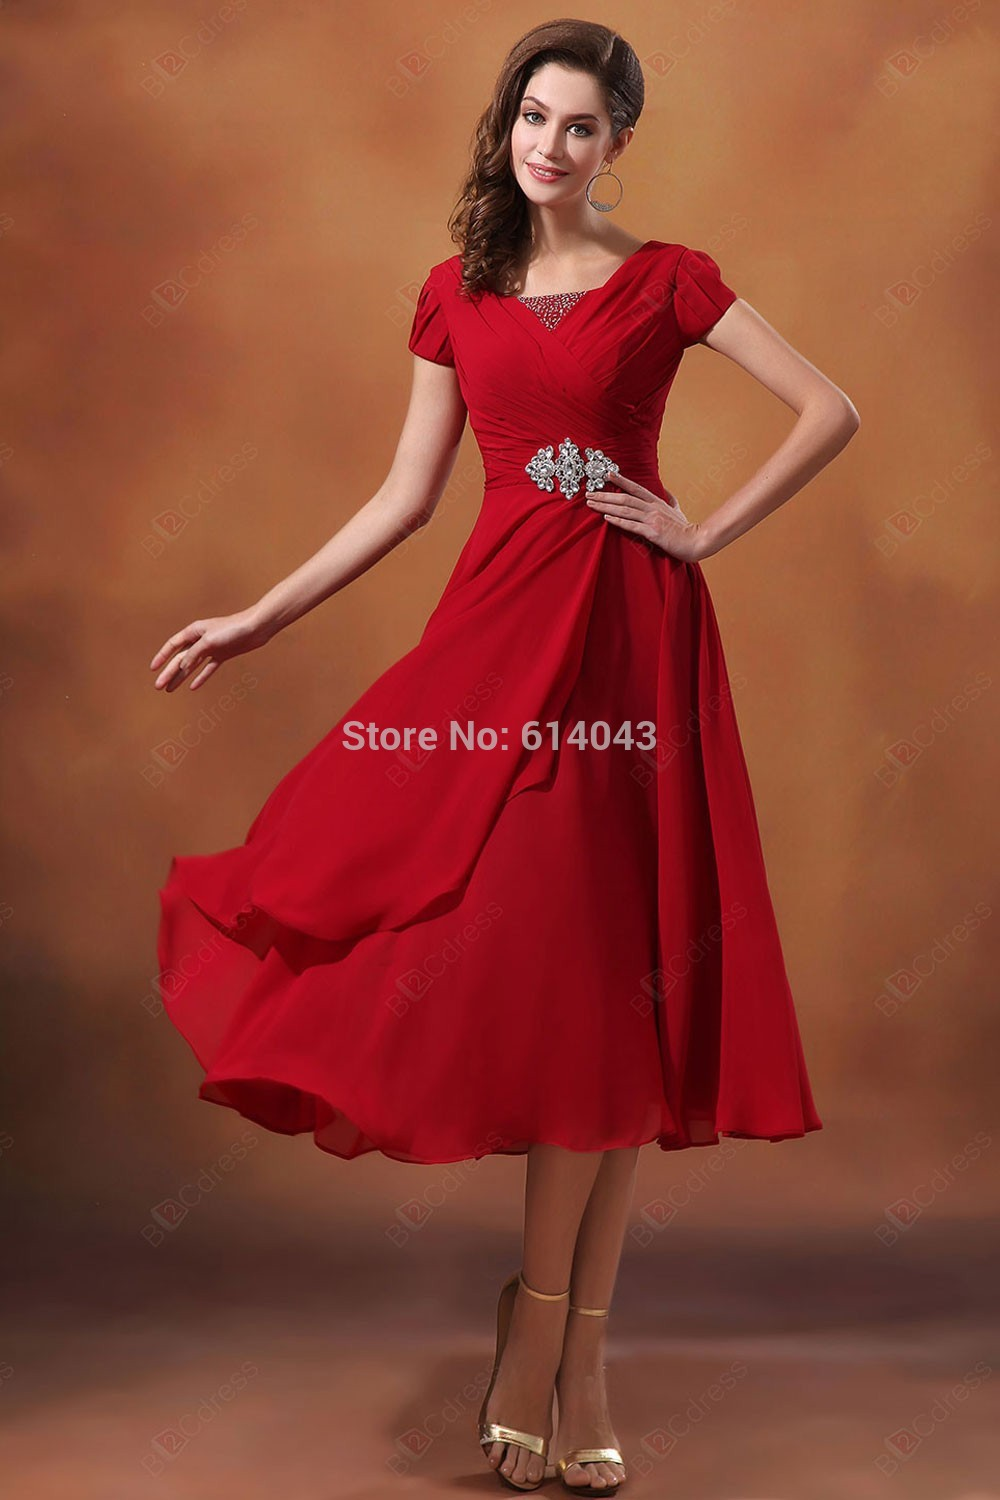 Online shop funky bridesmaid dresses nz buy with pockets blue uk online shop funky bridesmaid dresses nz buy with pockets blue uk adult scoop built in bra tank short dropped beading a line mid 2015 outlet aliexpress ombrellifo Images